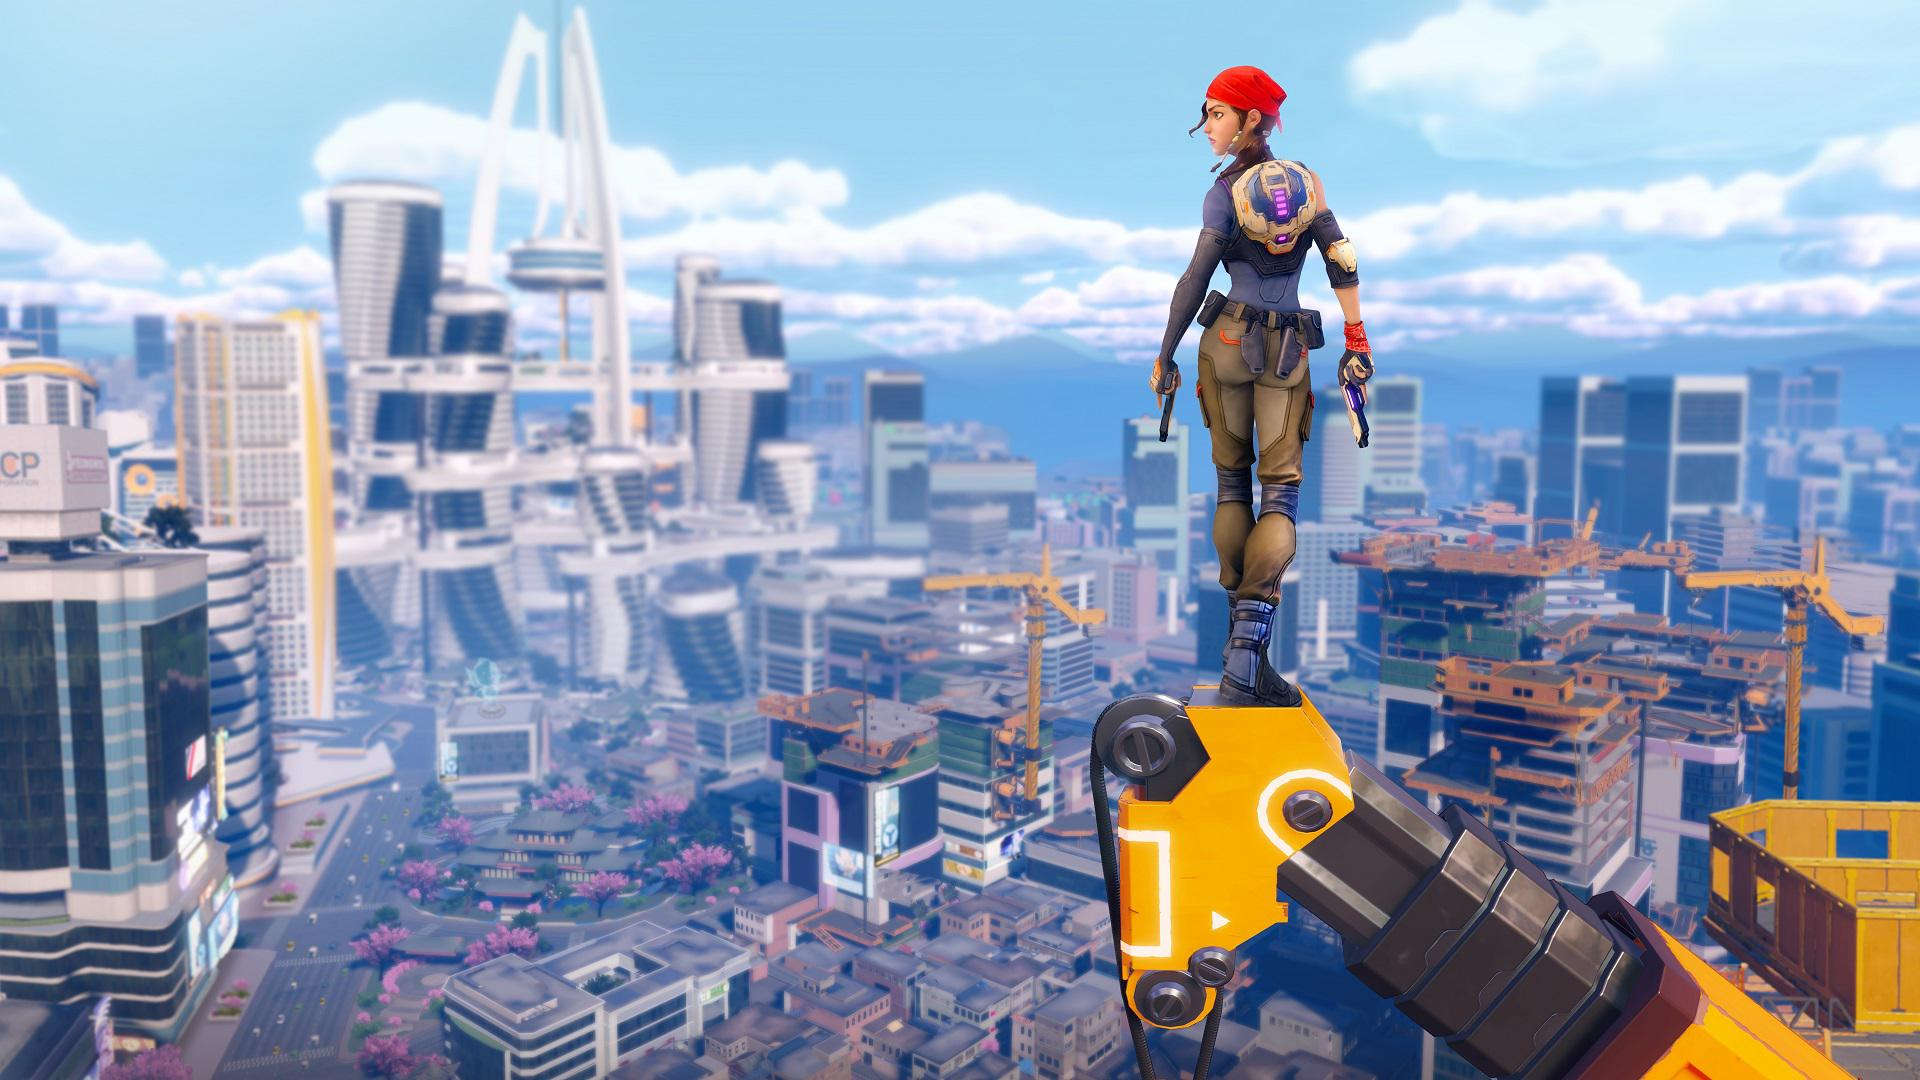 Agents of Mayhem will be one of the wackiest games of the year